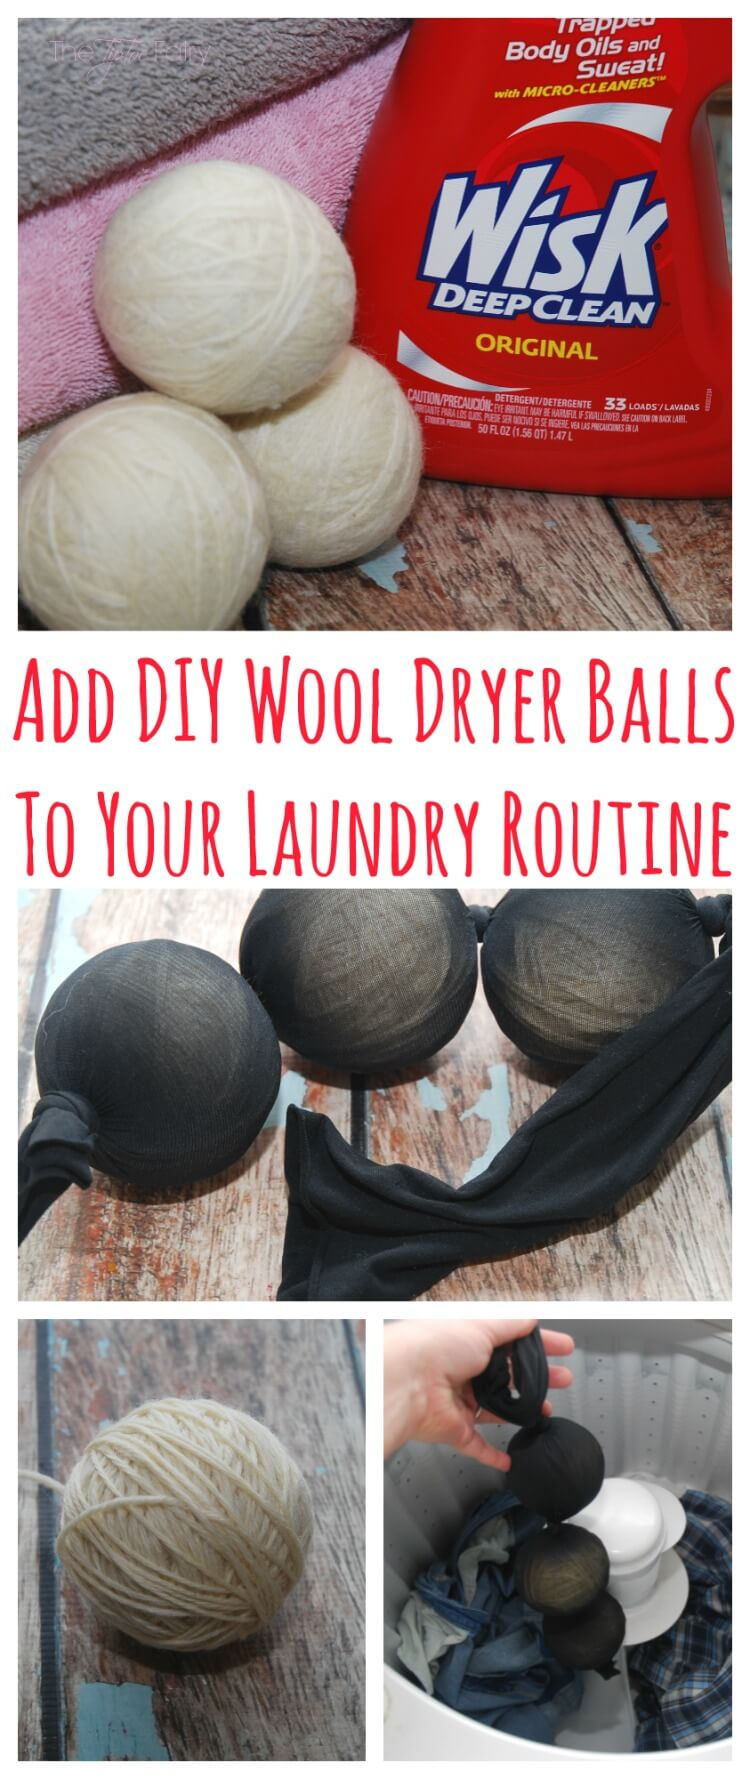 Add #DIY Wool Dryer Balls to your Laundry Routine! #Wisk60 #ad